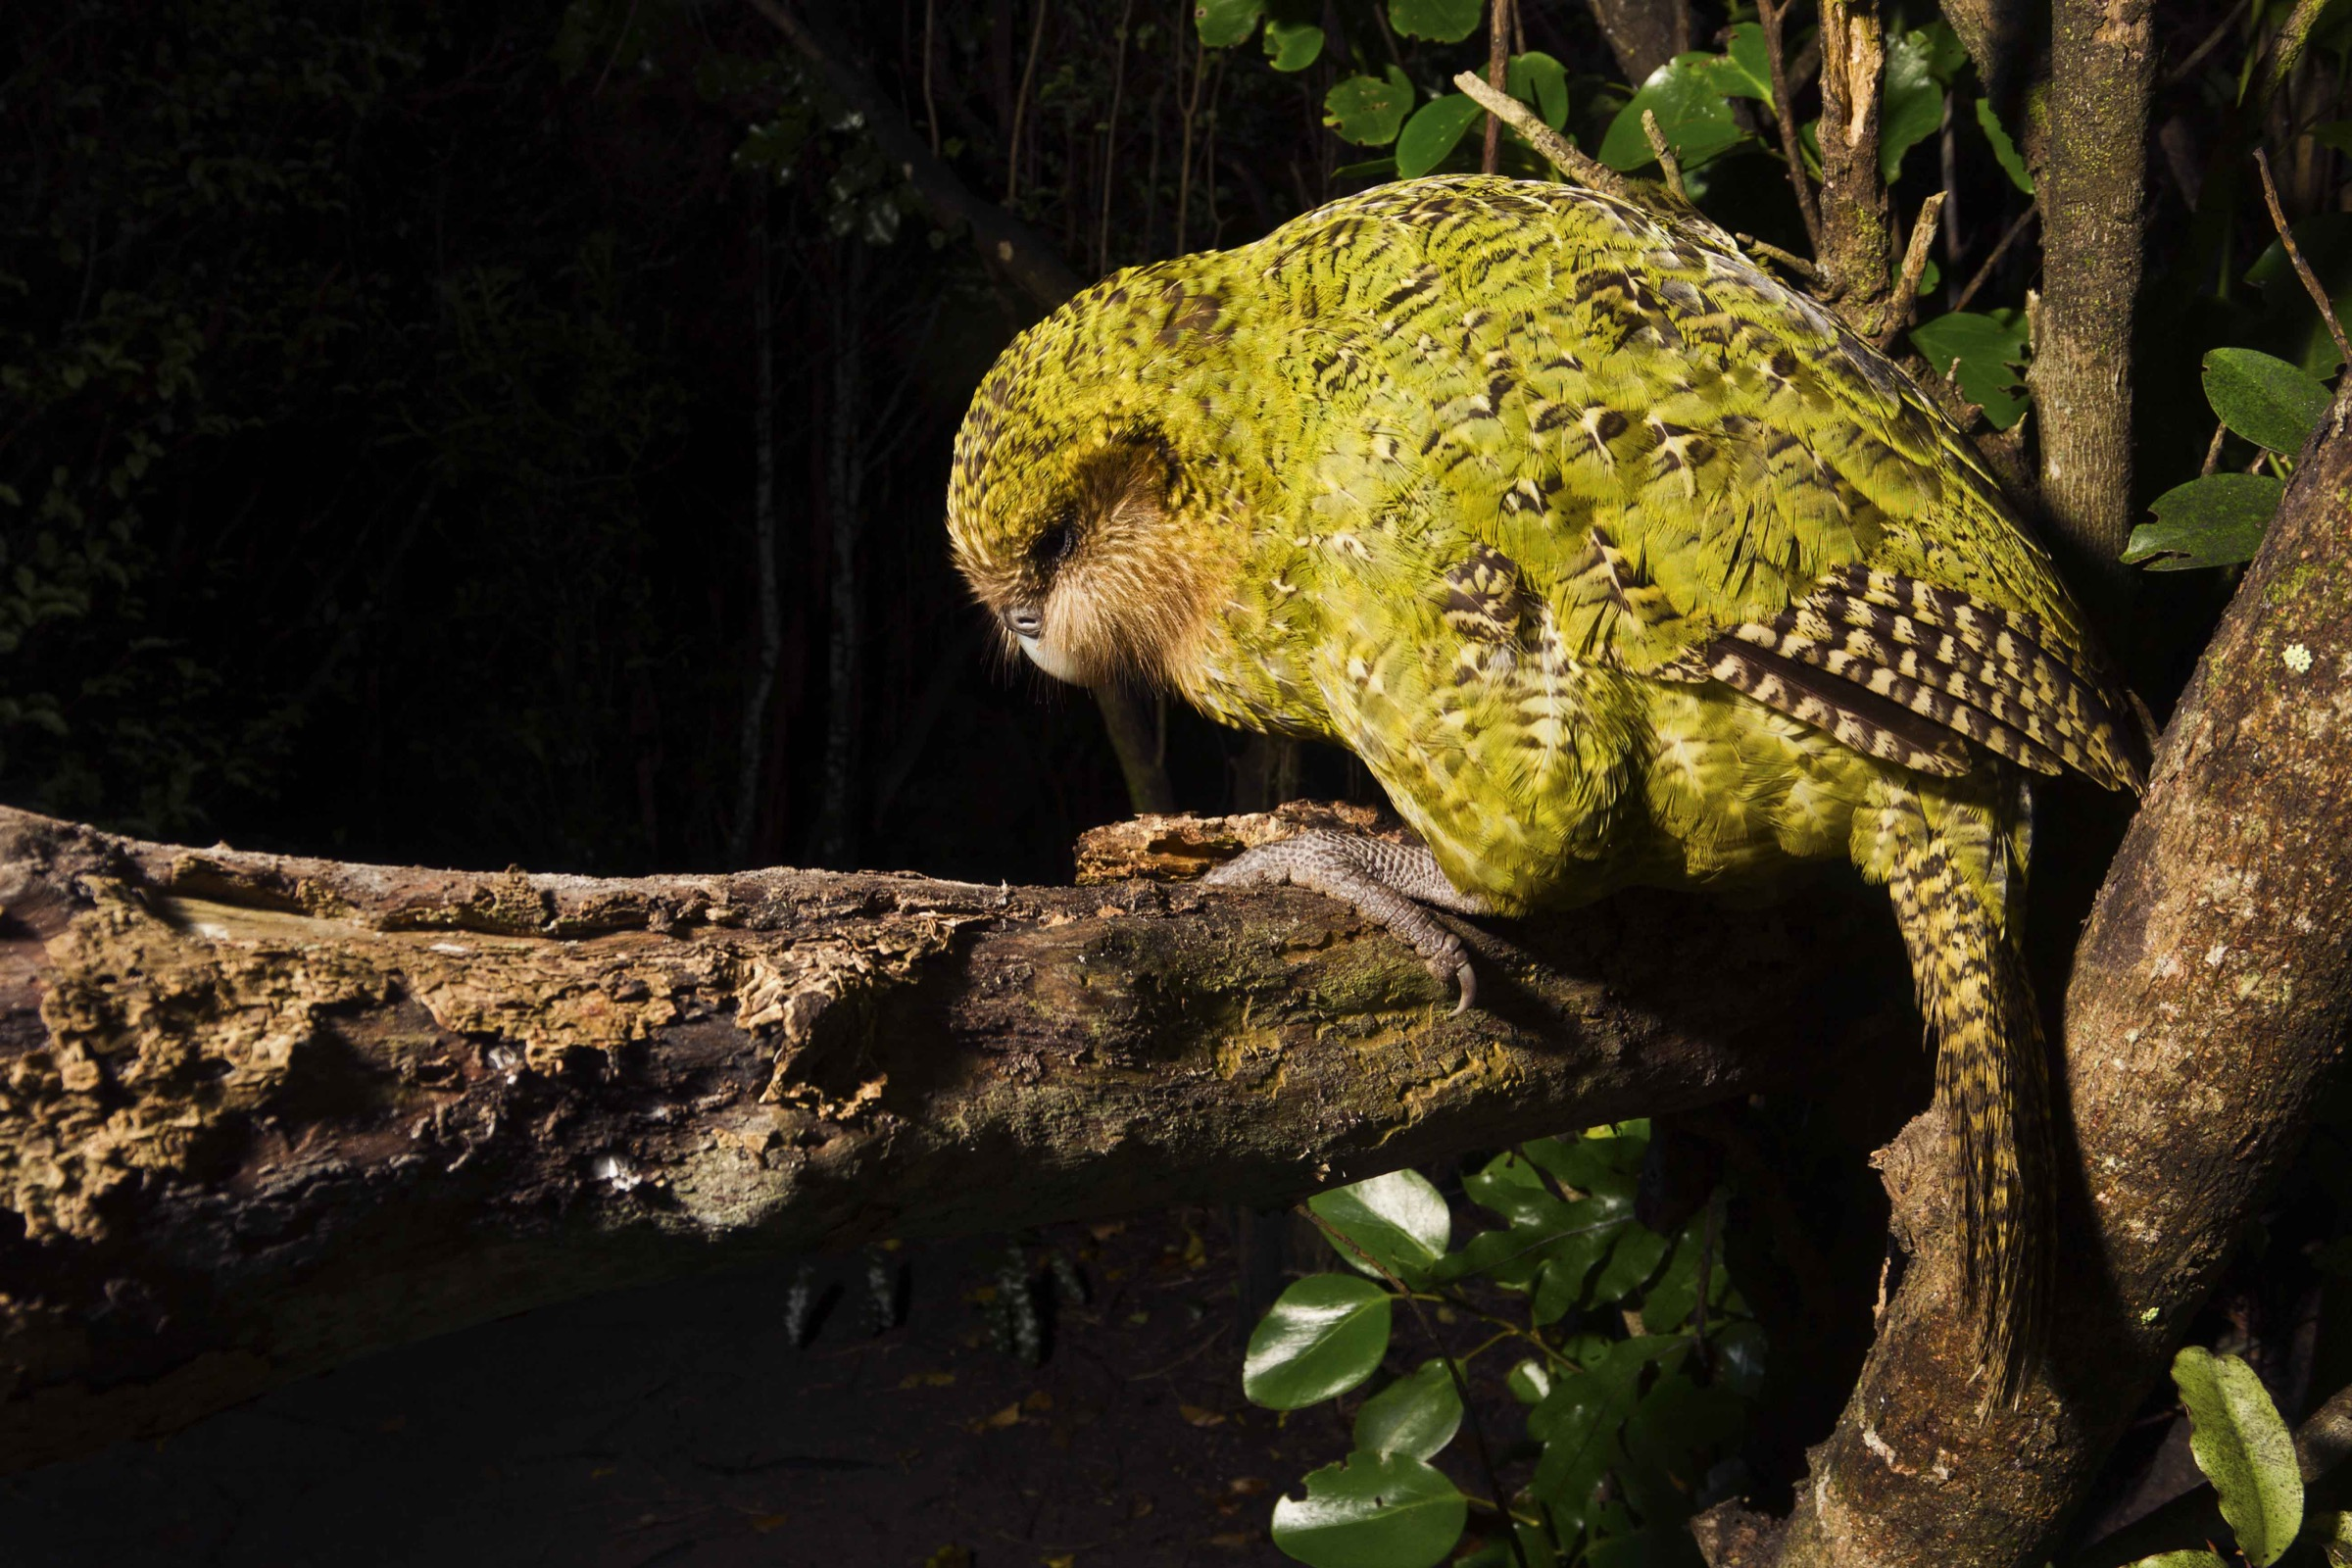 The kakapo is the heaviest parrot in the world. It cannot fly, so instead it uses its powerful legs to climb through the forest at night.